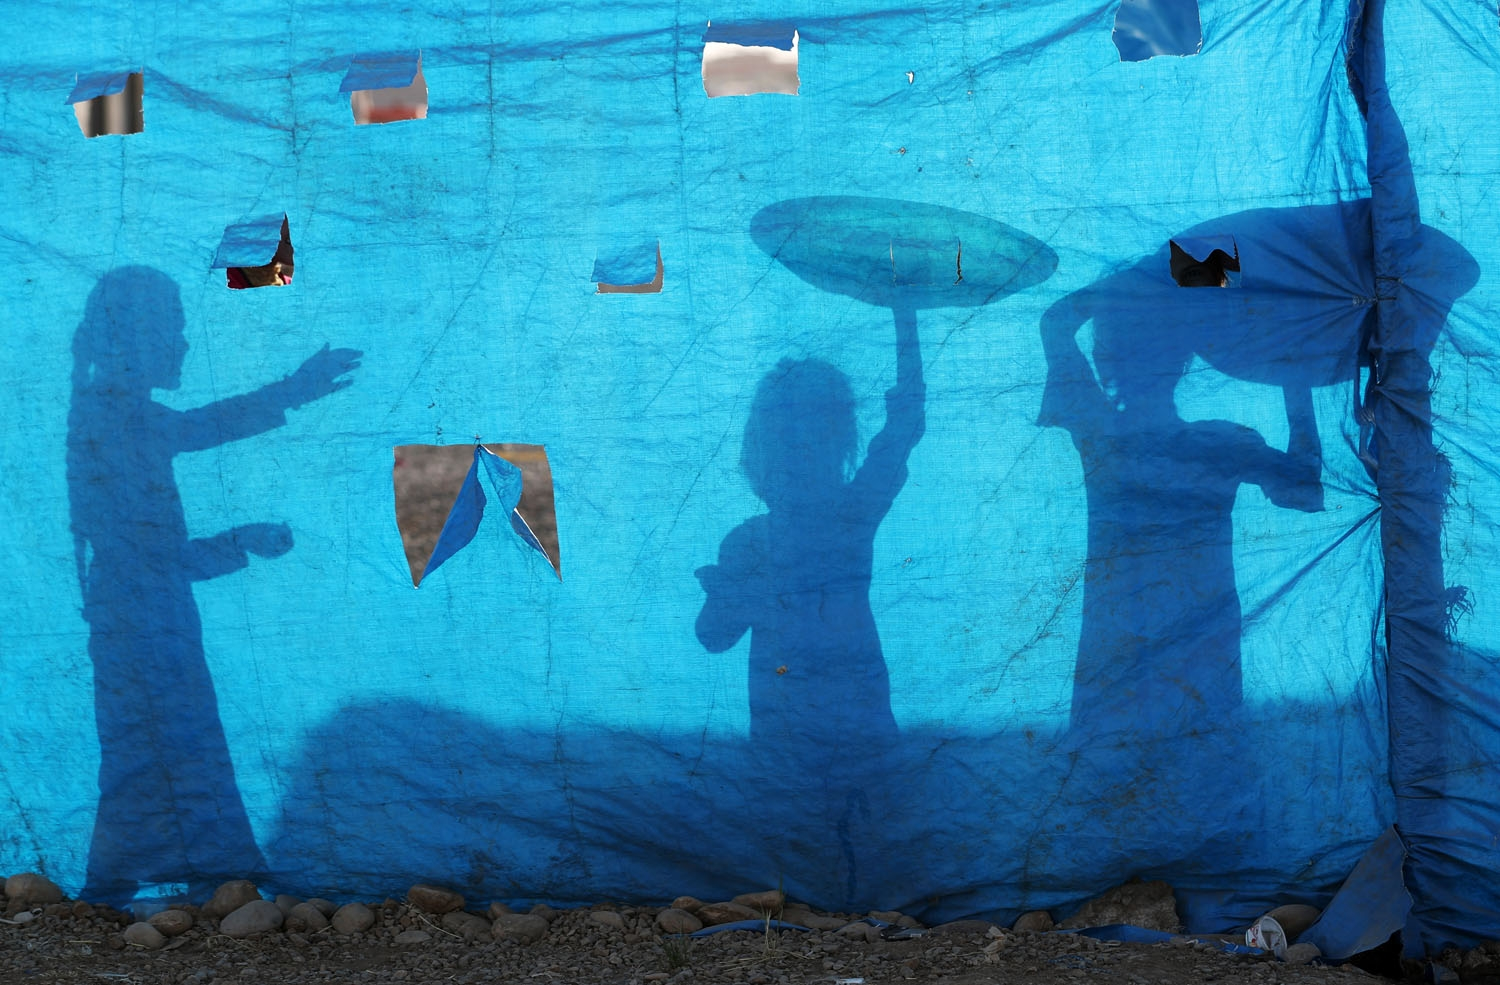 The silhouettes of Iraqi children are seen on tarpaulin as they collect water from a tank at the Al-Khazir camp for internally displaced people, located between Arbil and Mosul, on June 6, 2017.